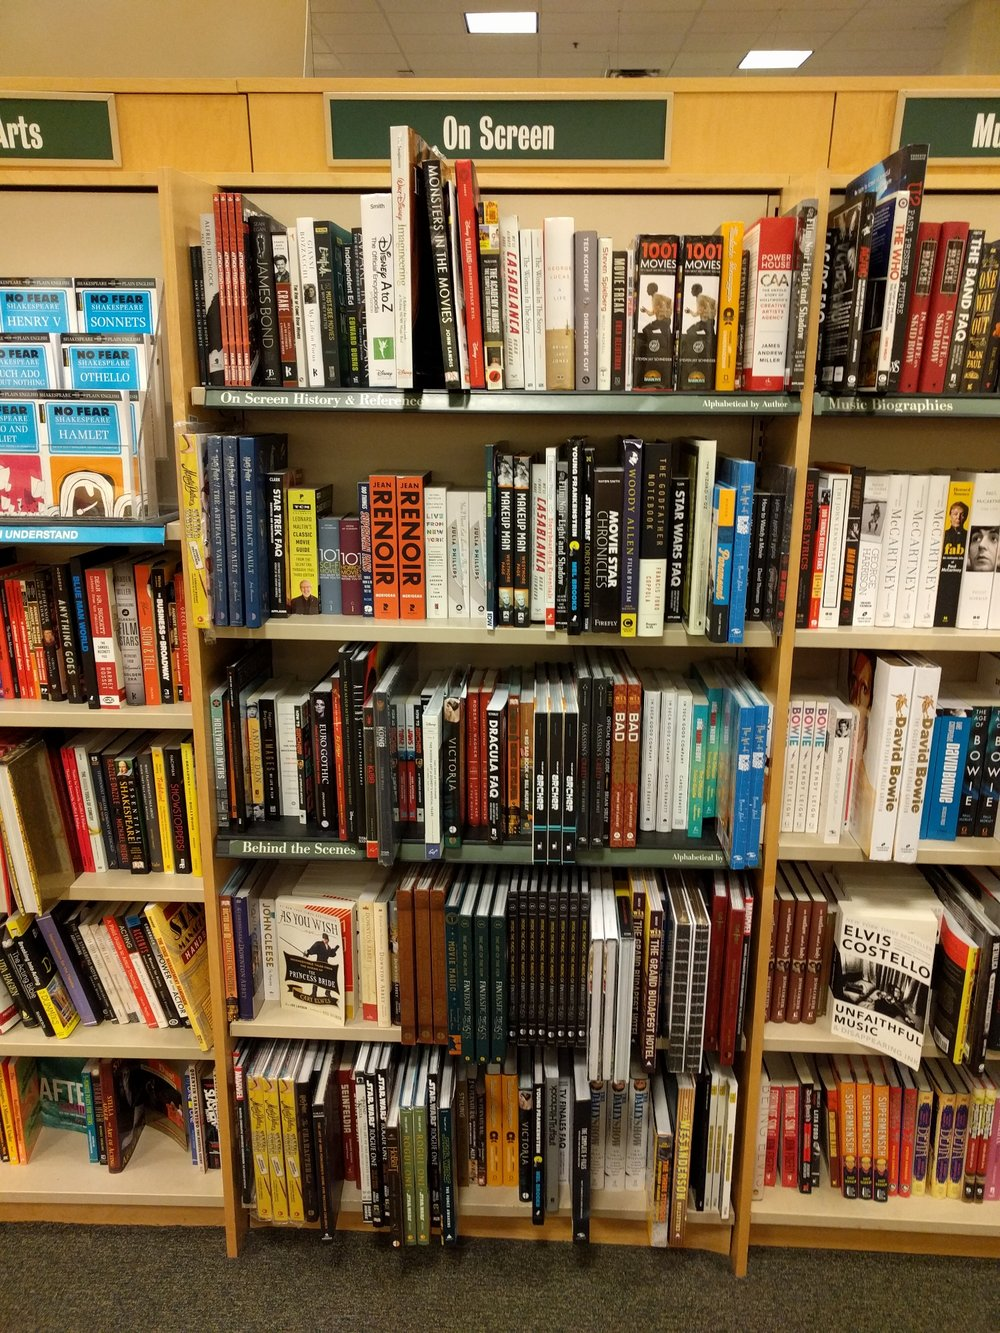 Inside Barnes and Noble Bookstore_On Screen Selection